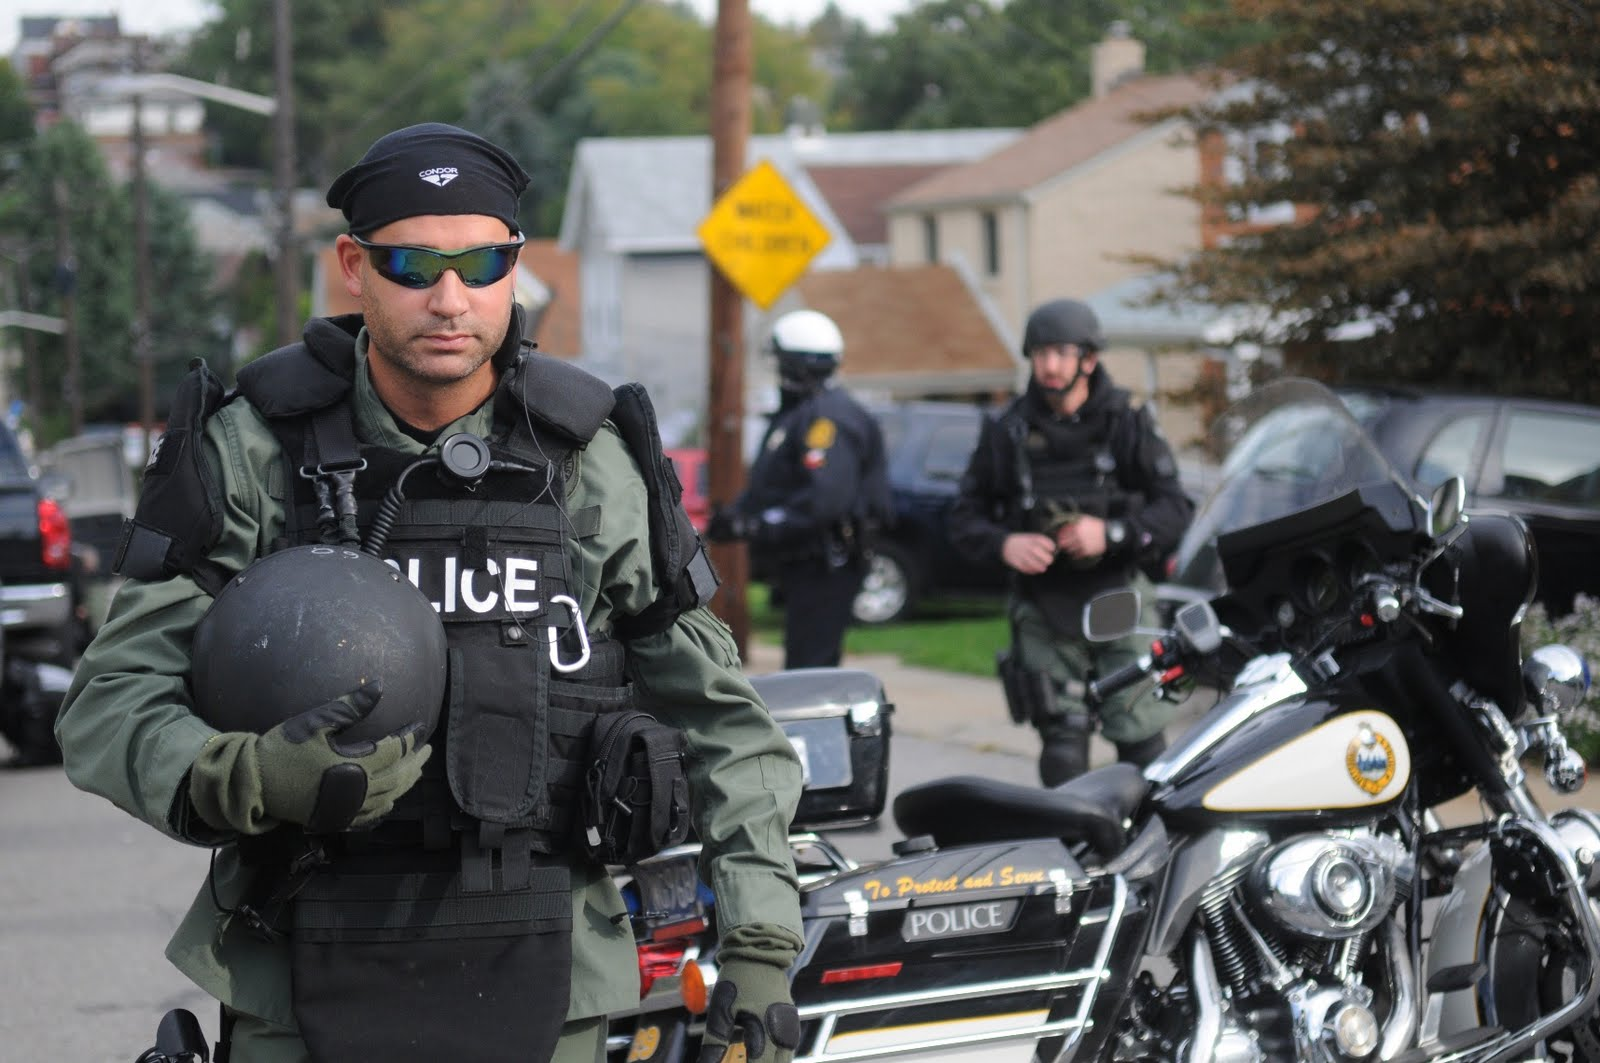 I took this photo while covering a story about a police standoff for the Post-Gazette